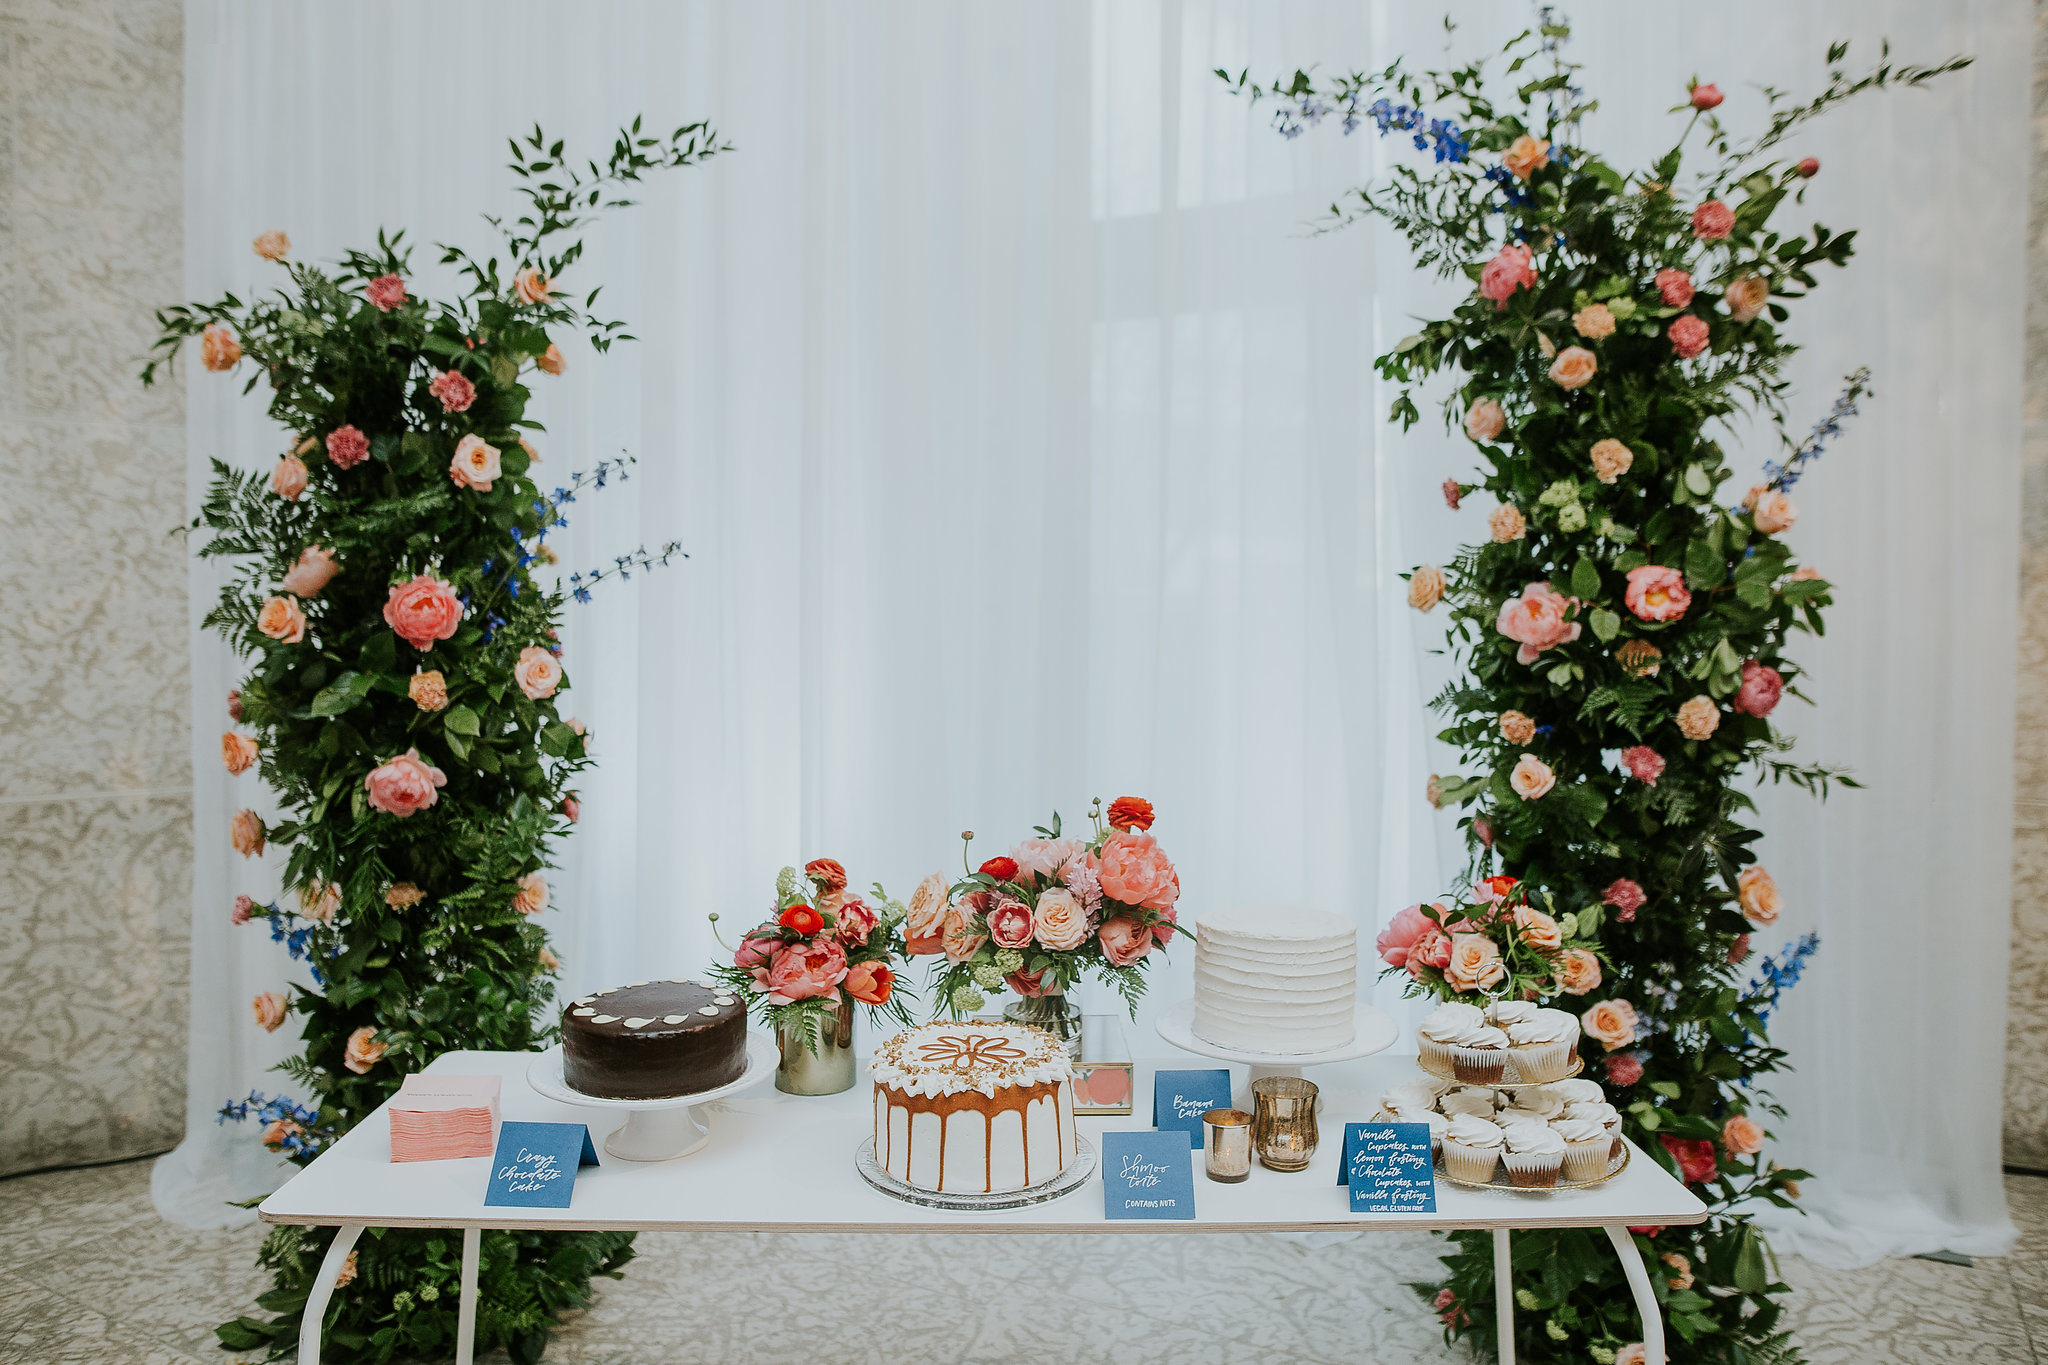 Incredible Floral and Wedding Cake Display - Wedding Florists in Winnipeg